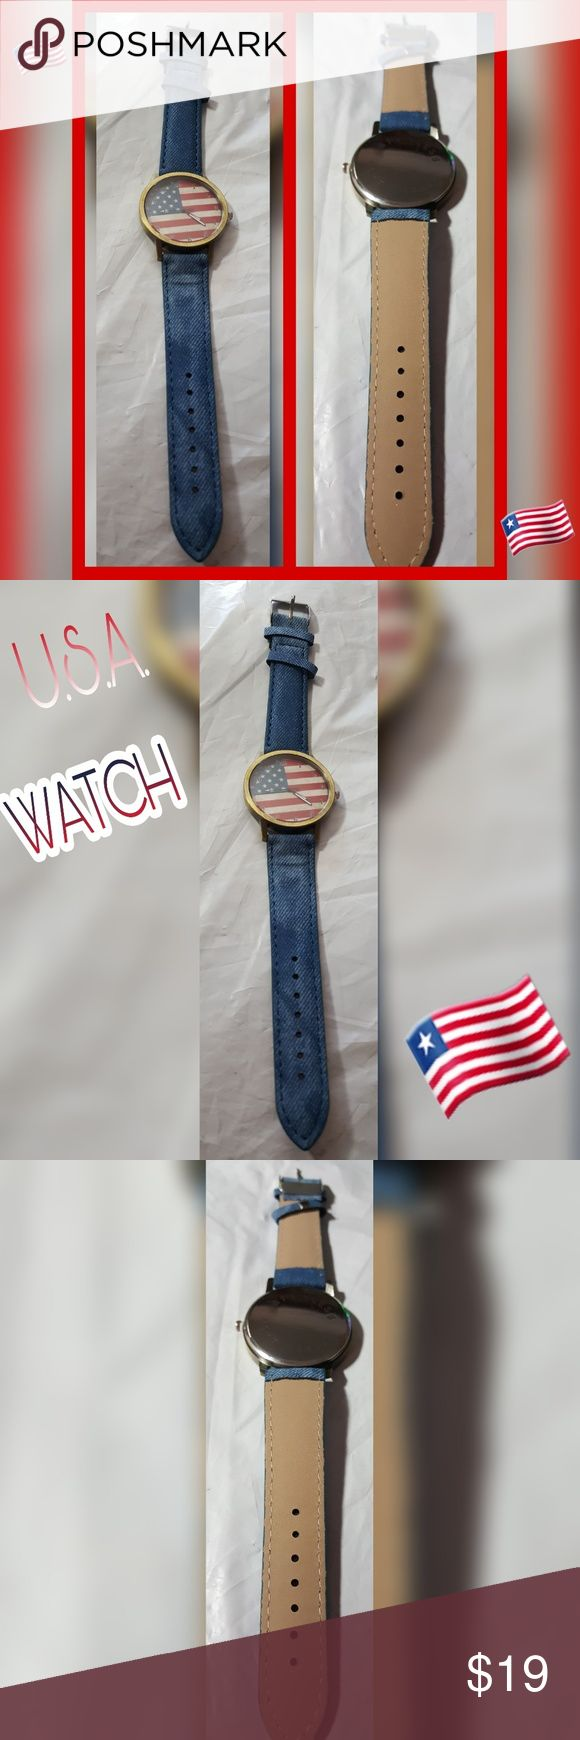 USA FLAG FACE WATCH USA FLAG FACE WATCH DENIM-LIKE STRAP FLAG FACE IT WORKS!!! NWOT Accessories Watches